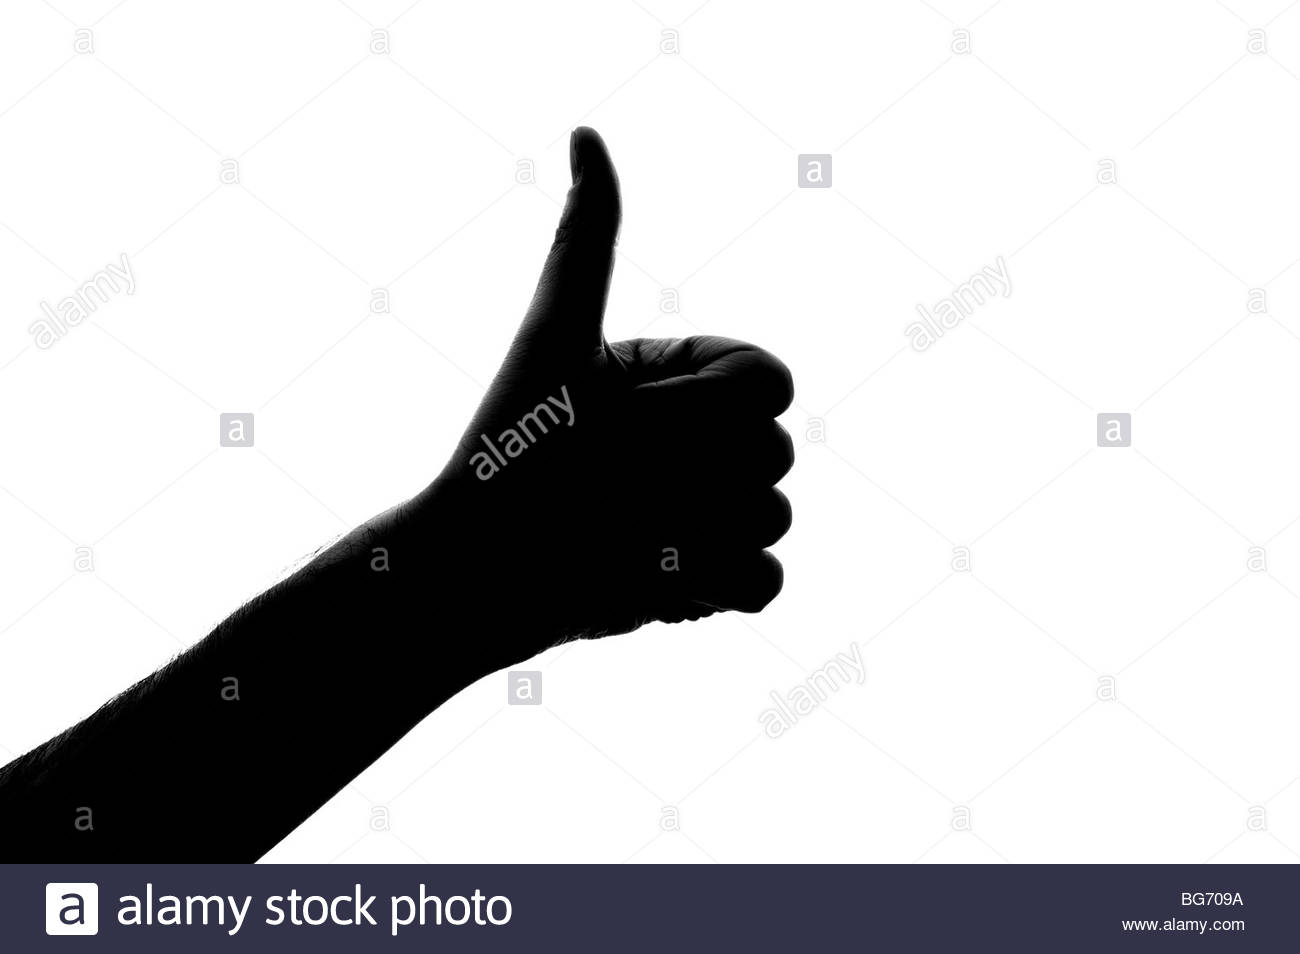 Thumbs up hand signal - Stock Image